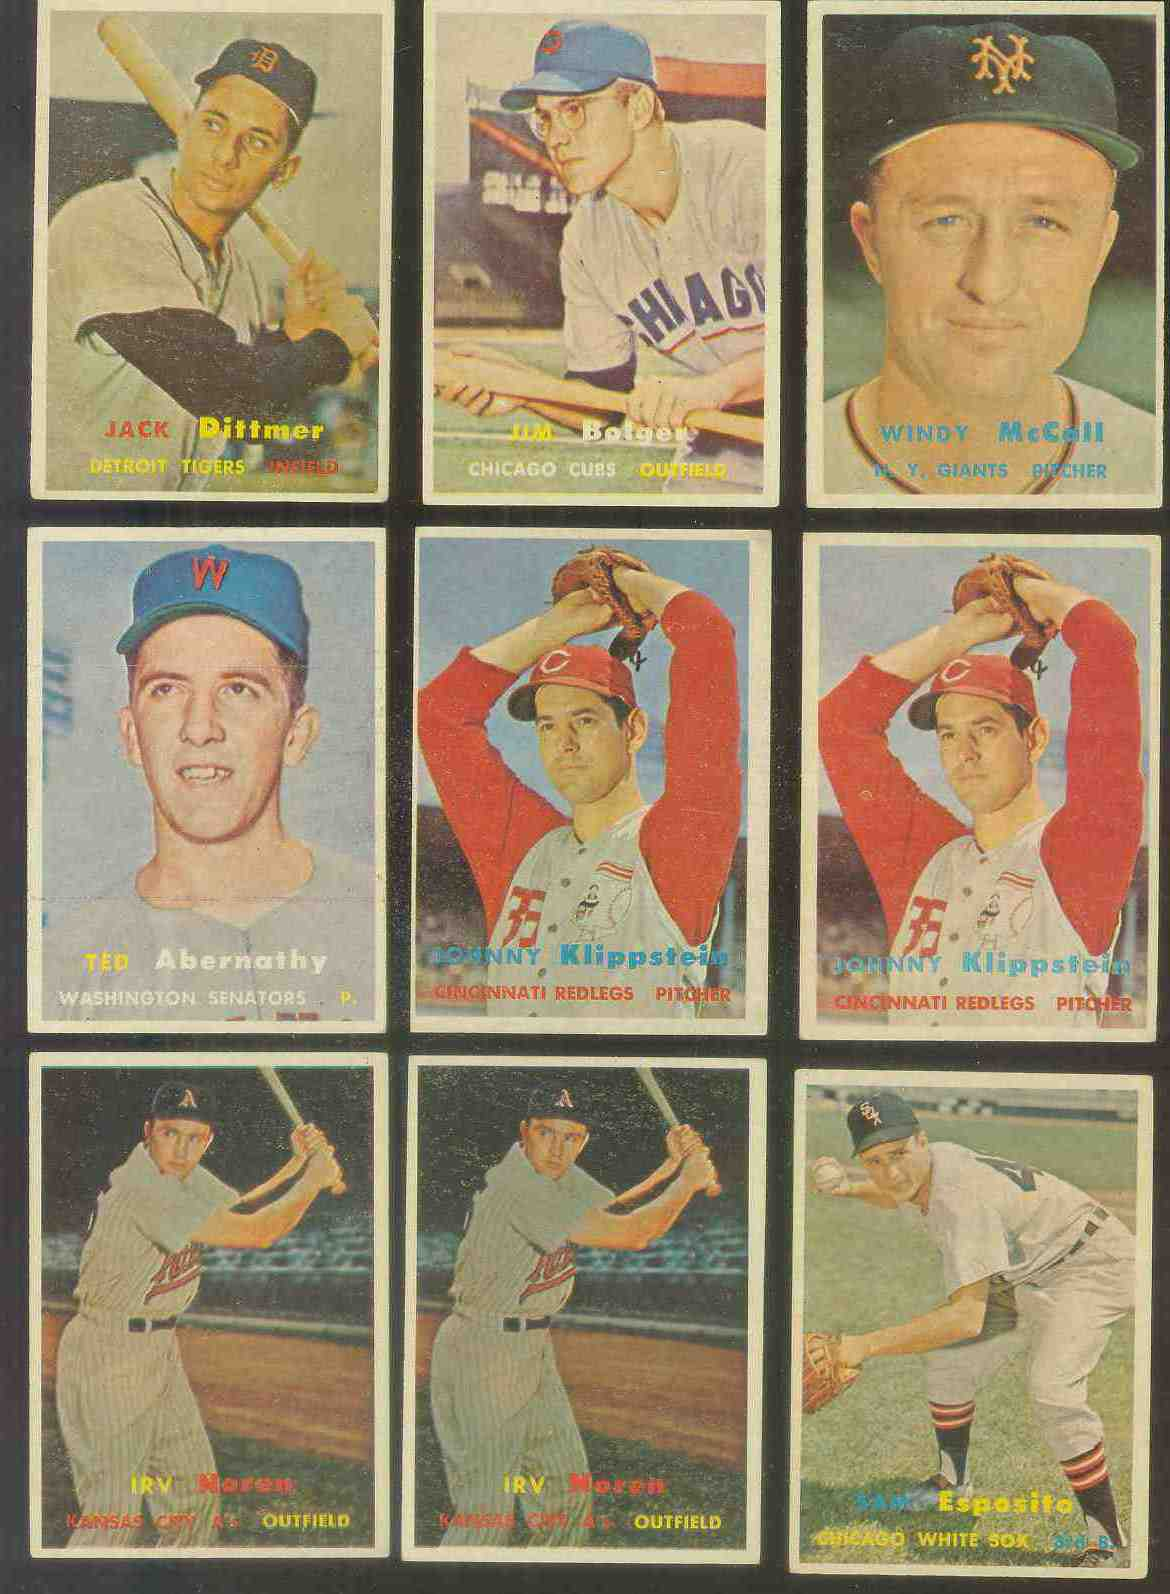 1957 Topps #291 Windy McCall SCARCE MID SERIES (NY Giants) Baseball cards value